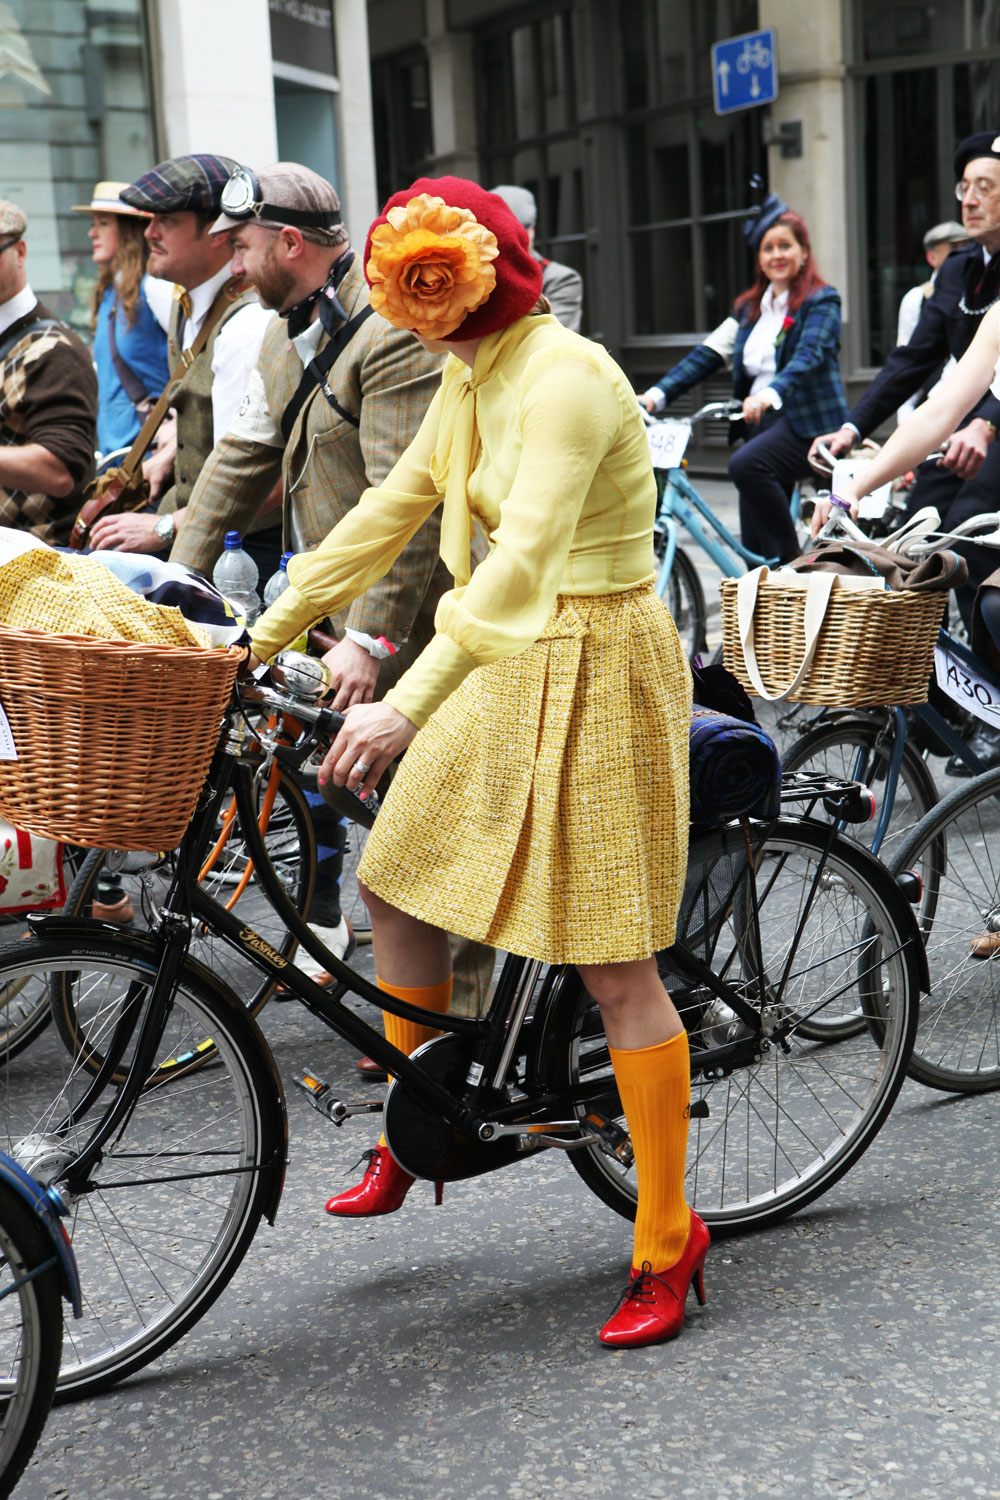 Tweed-Run-London-2014-Bike-Pretty-Most-Dashing-Dame-Bike-Fashion-Photo-Kelly-Miller-5